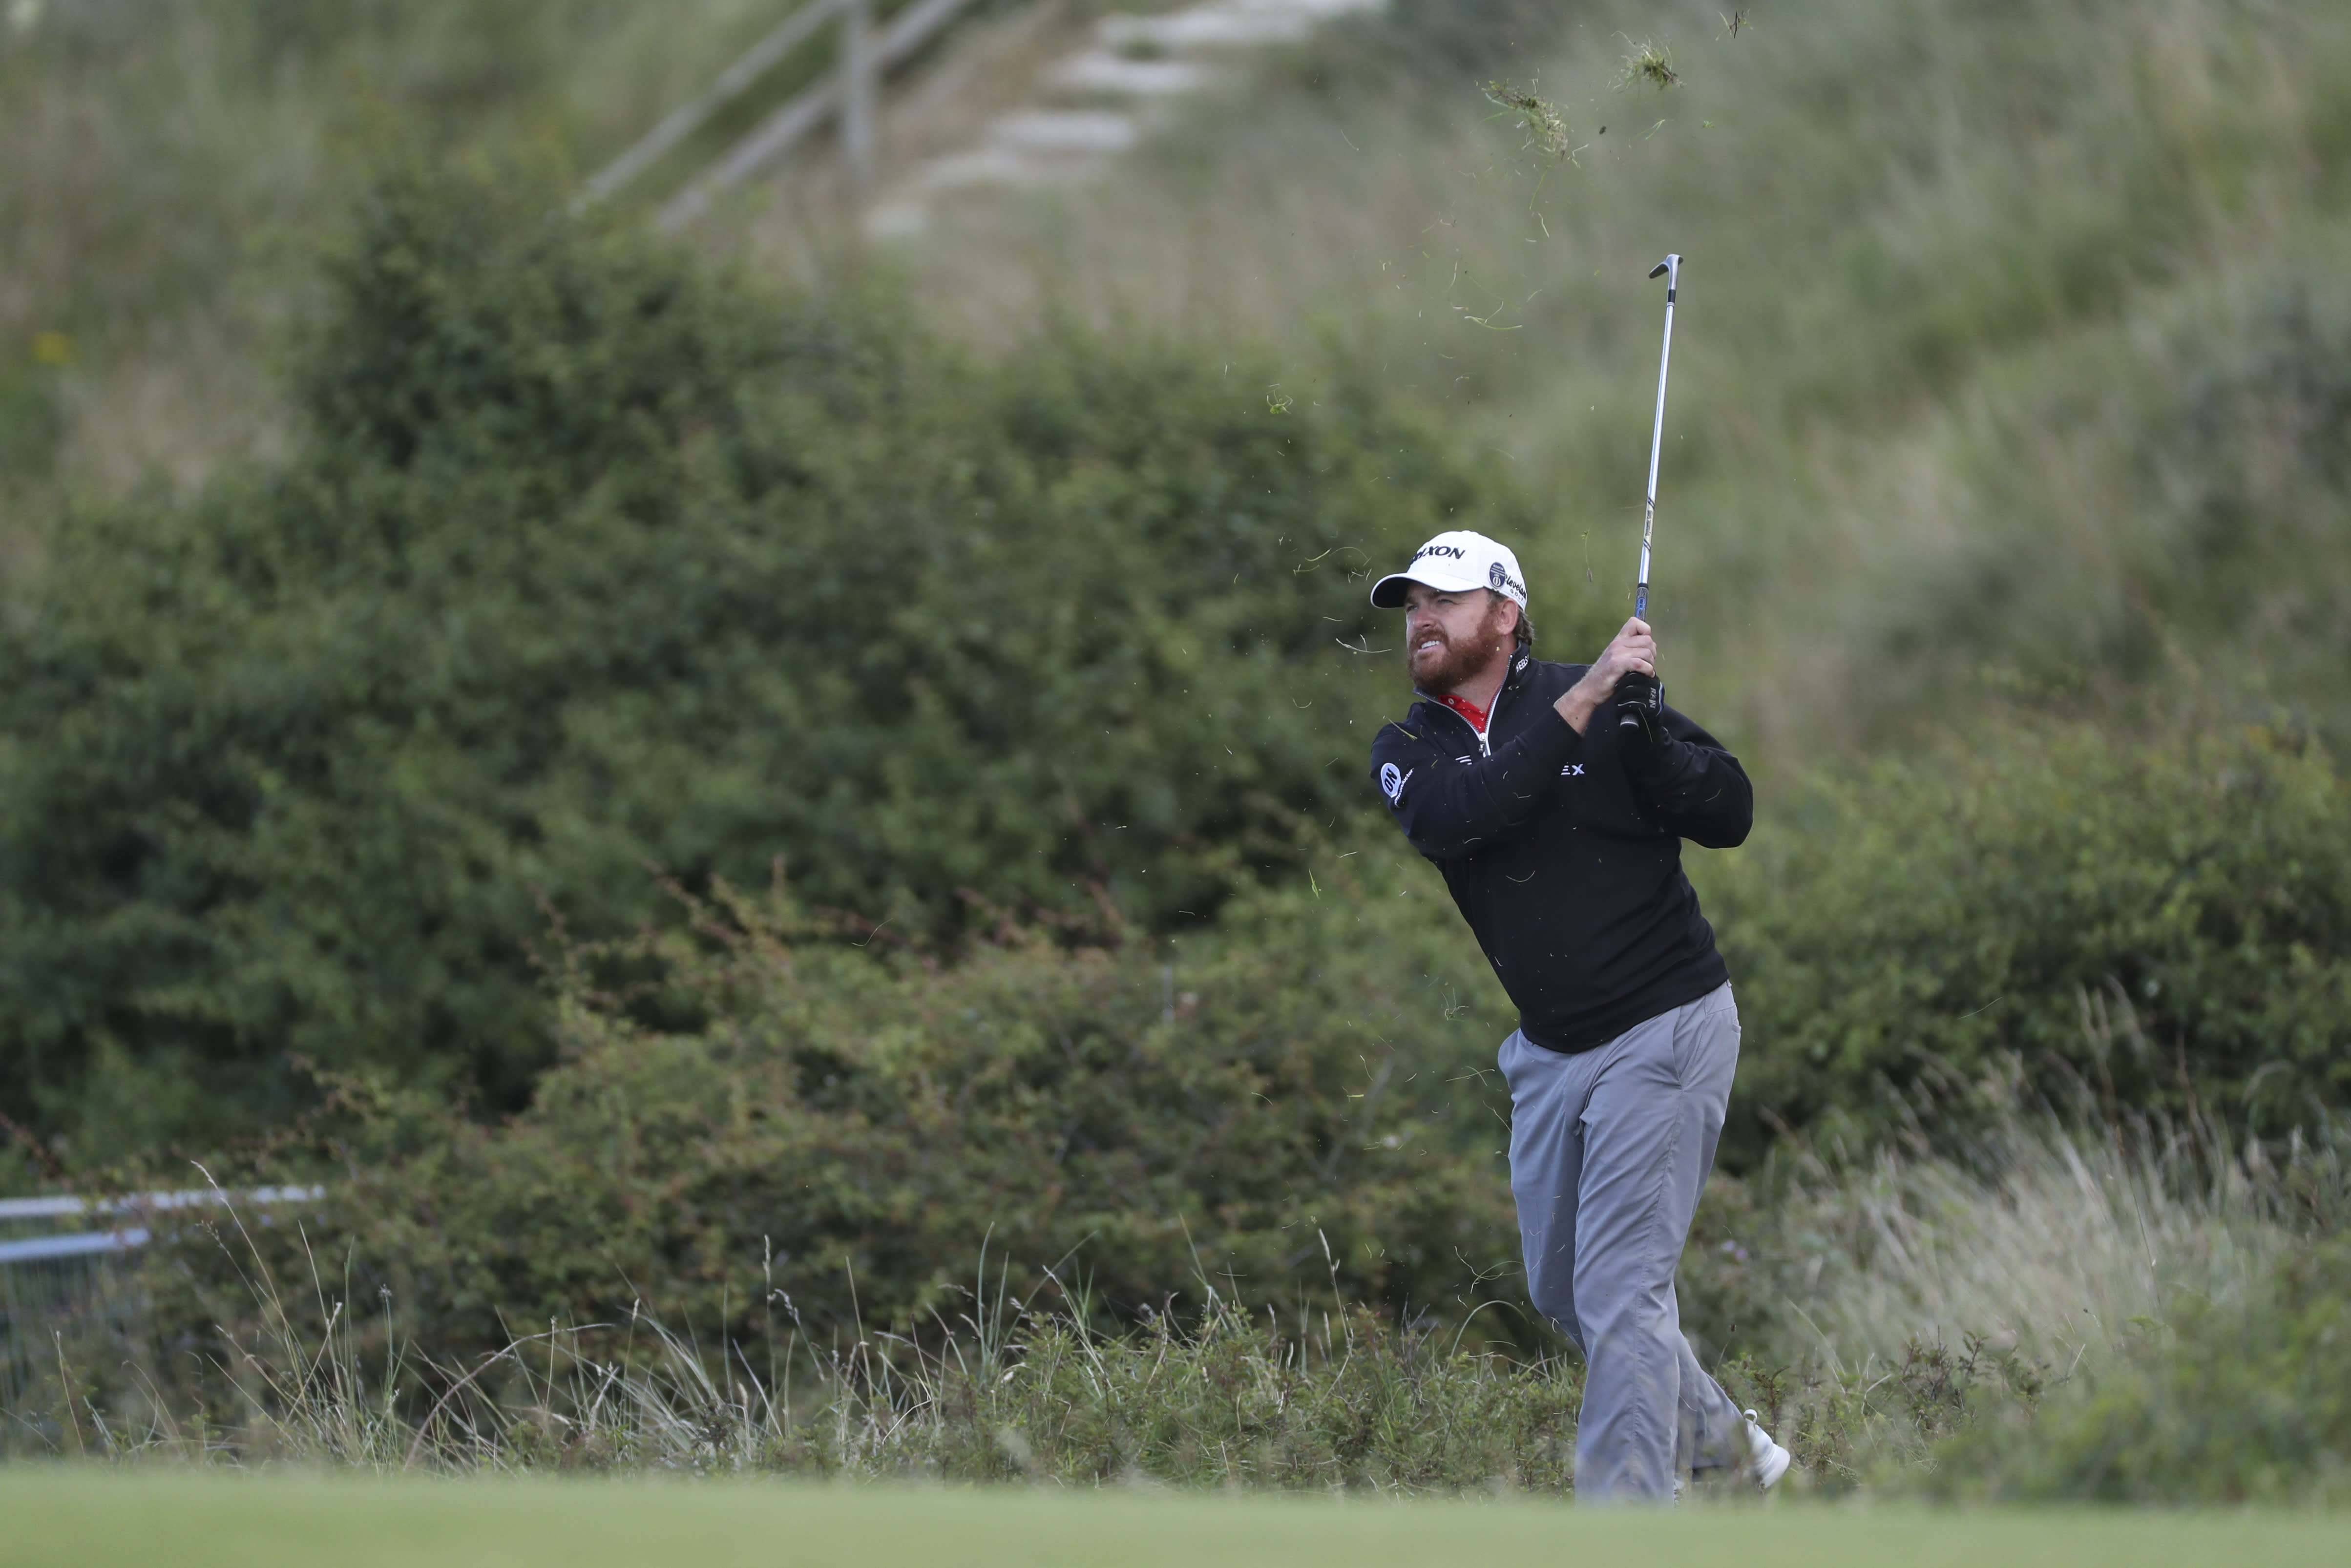 J.B. Holmes of the United States hits a shot on the 5th hole during the third round of the British Open Golf Championships at Royal Portrush in Northern Ireland, Saturday, July 20, 2019.(AP Photo/Peter Morrison)